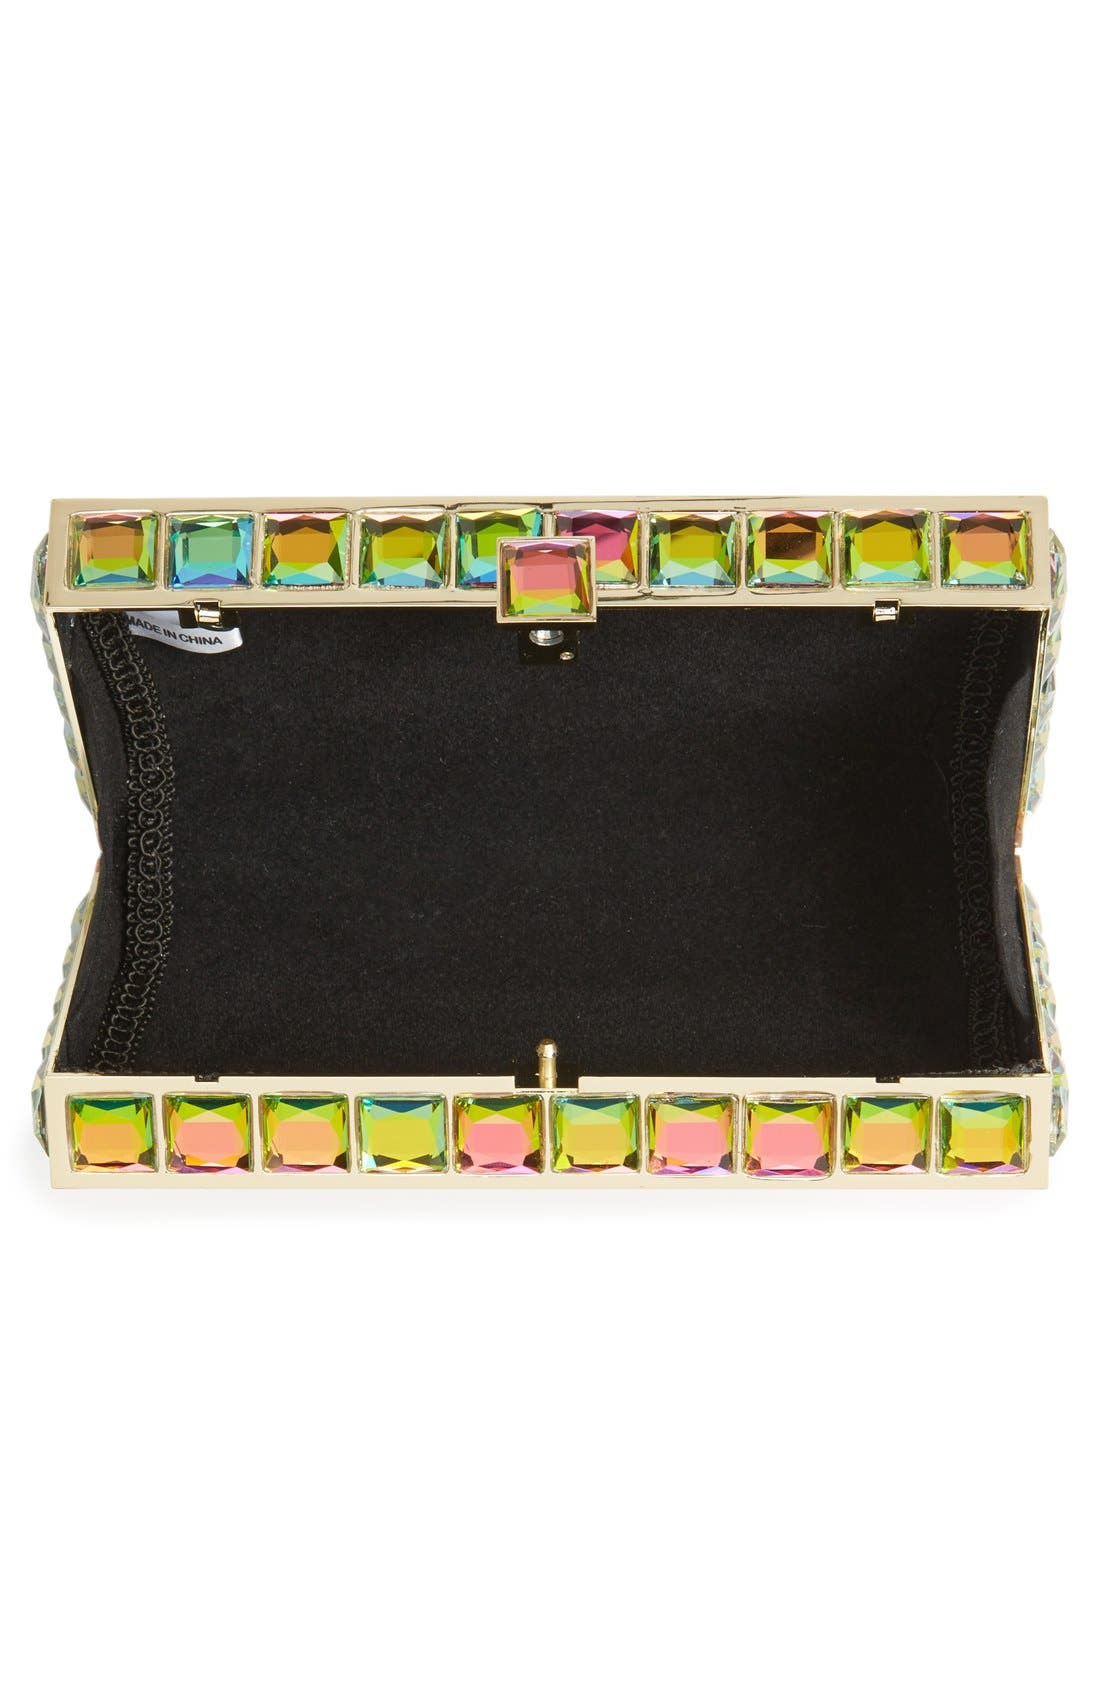 Natasha Couture Box Clutch,                             Alternate thumbnail 4, color,                             Iridescent